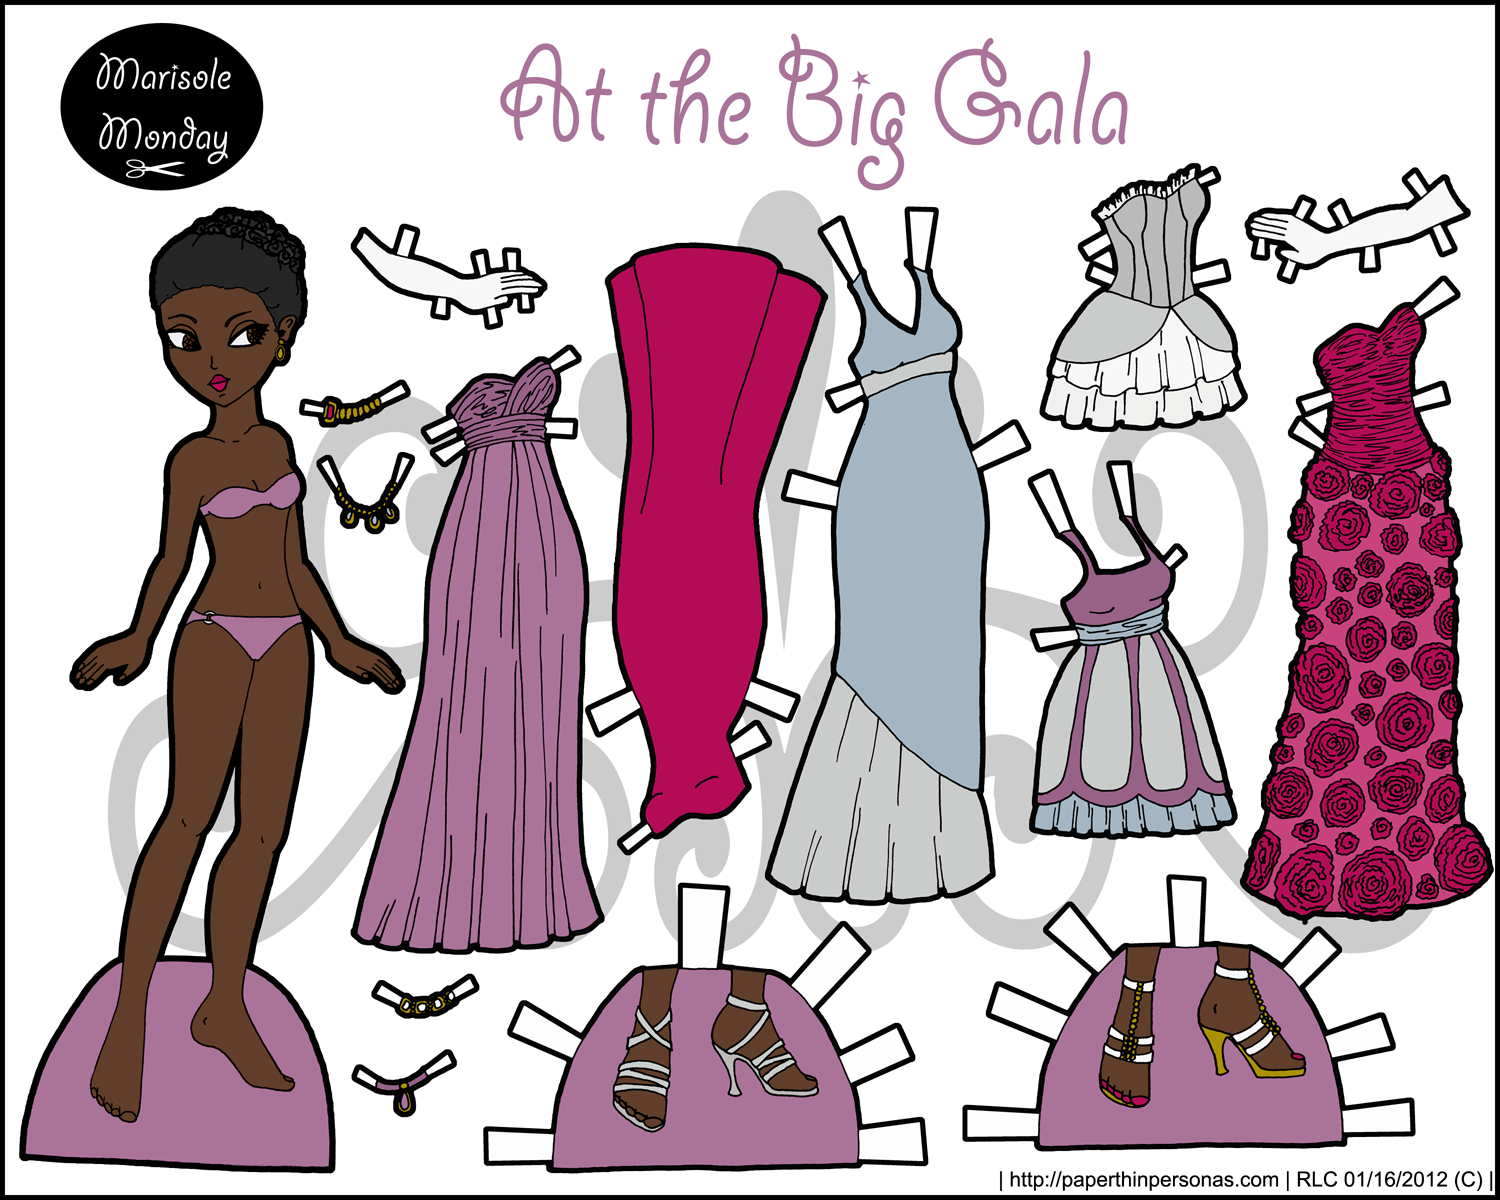 Free Printable Paper Doll- Marisole Monday - Free Printable Paper Dolls From Around The World